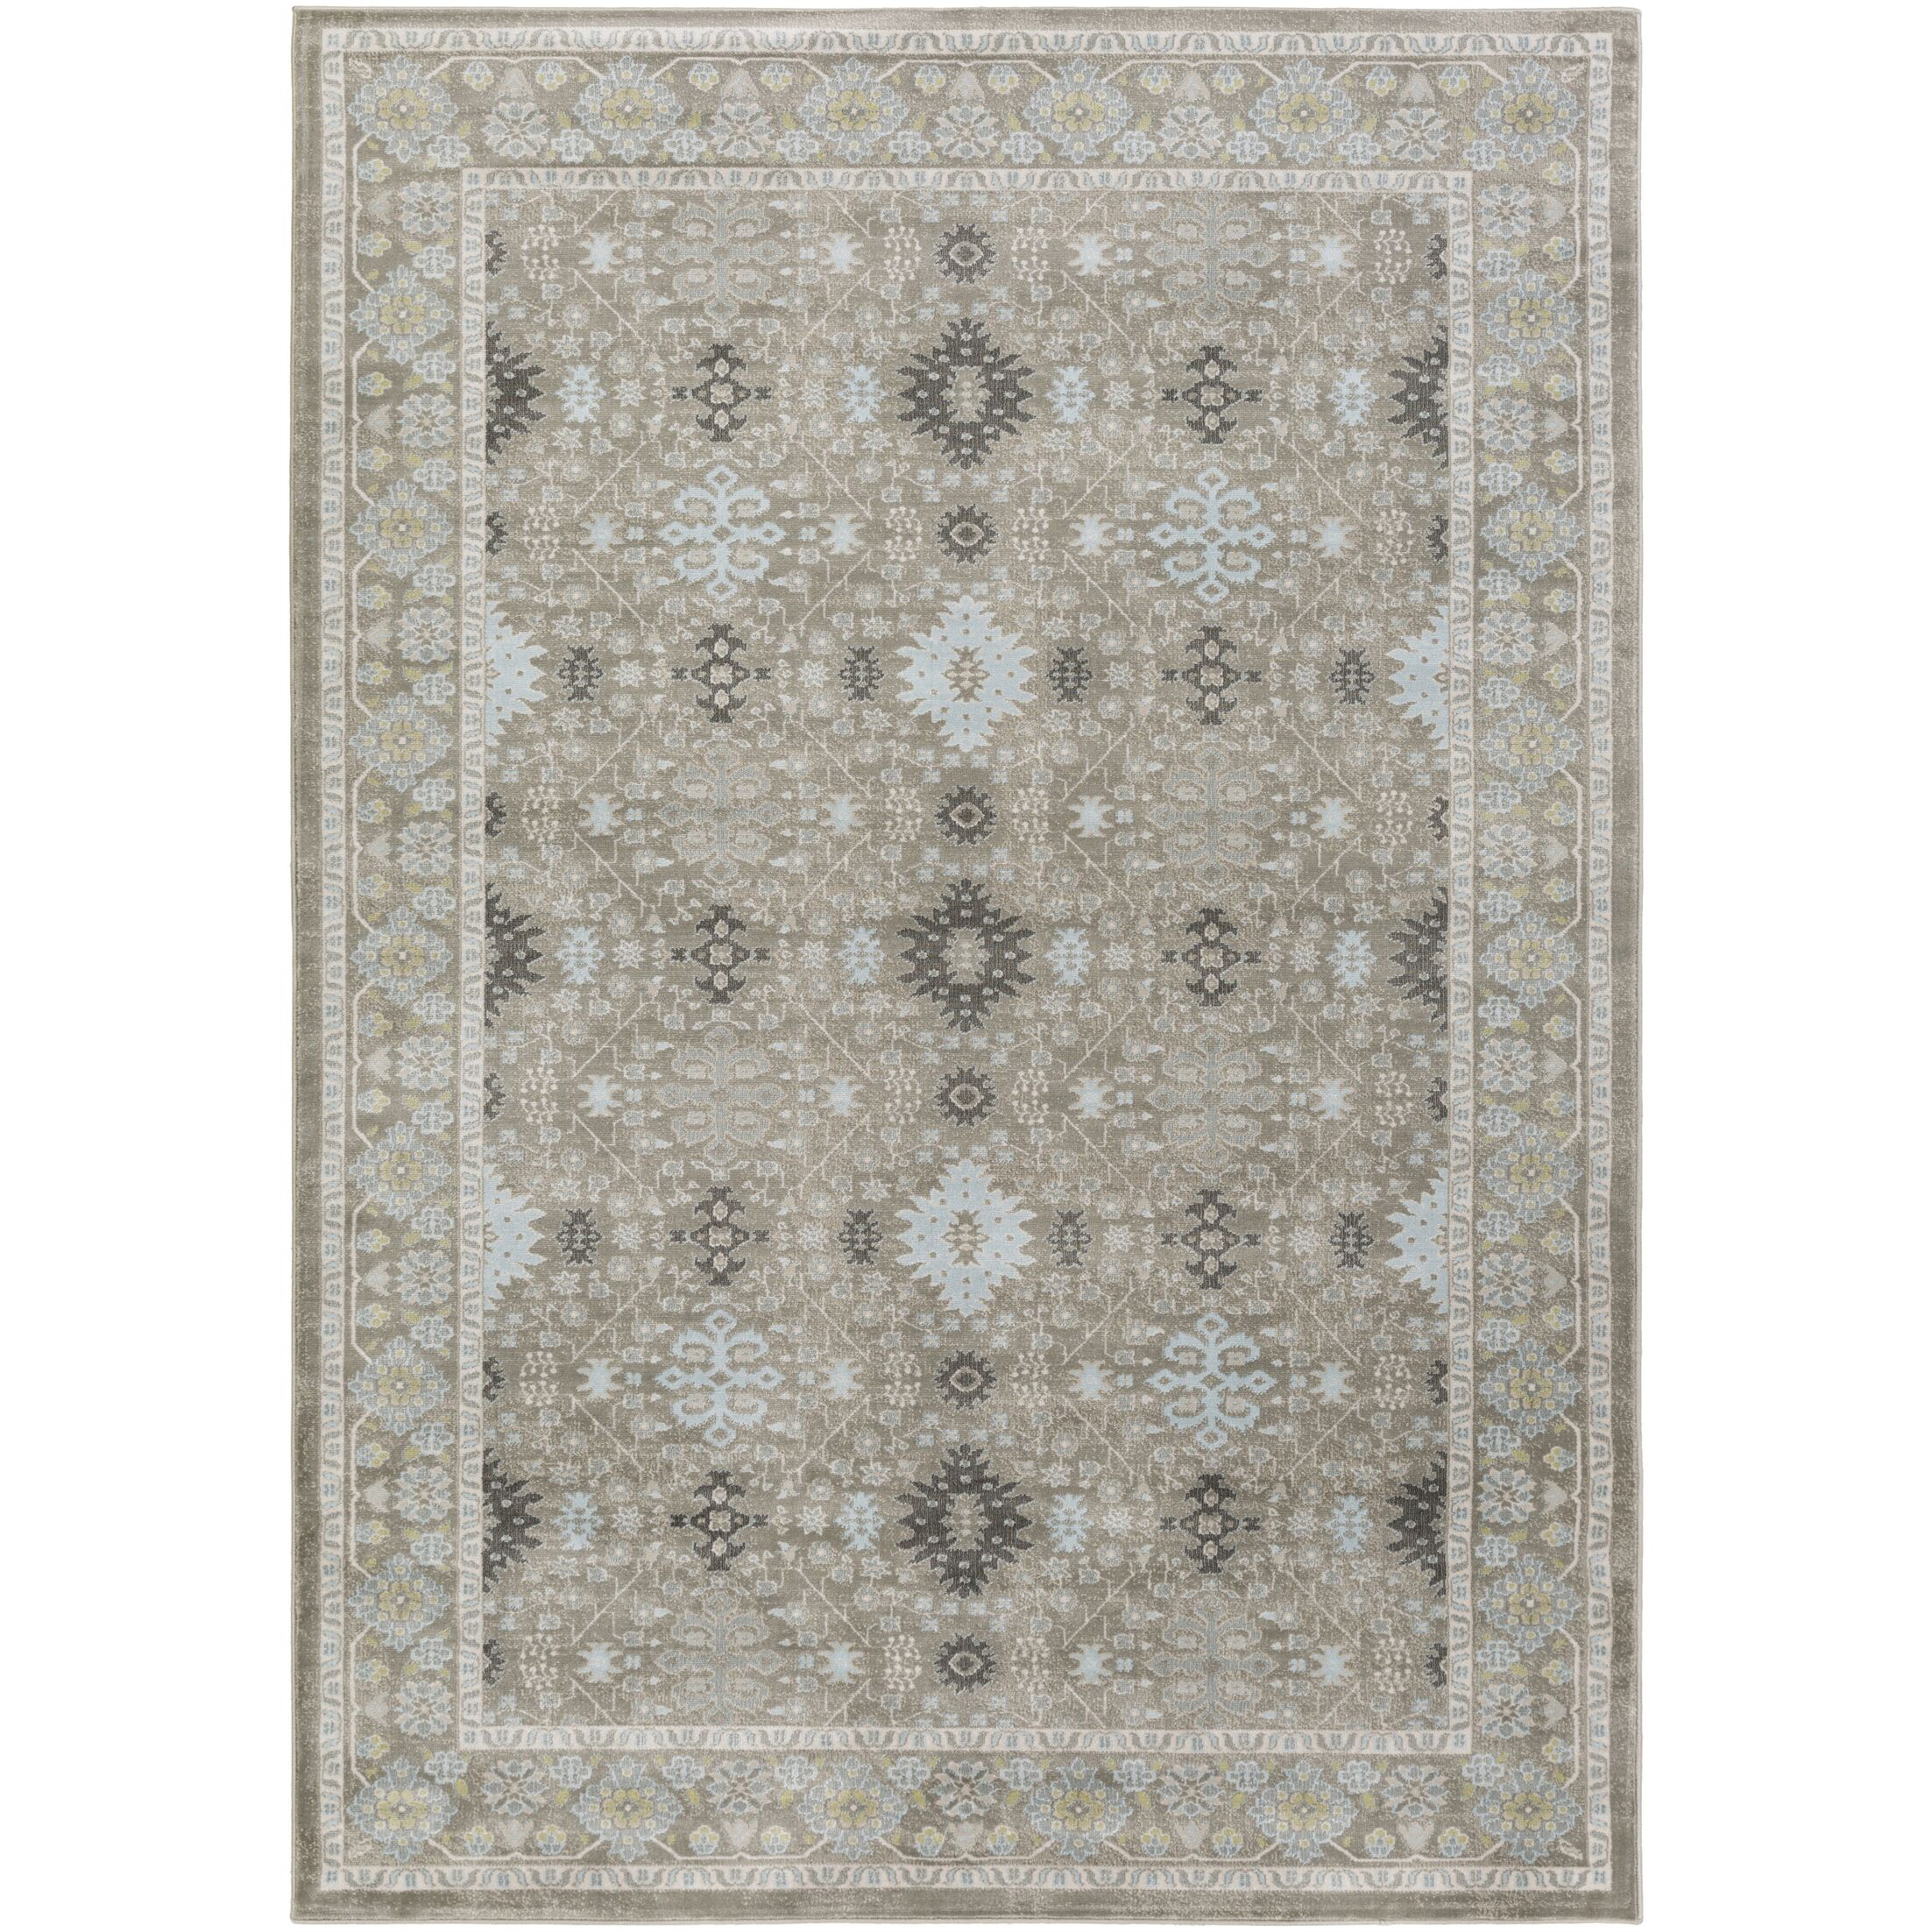 Riviere Gray/Green Area Rug Rug Size: Rectangle 7'10